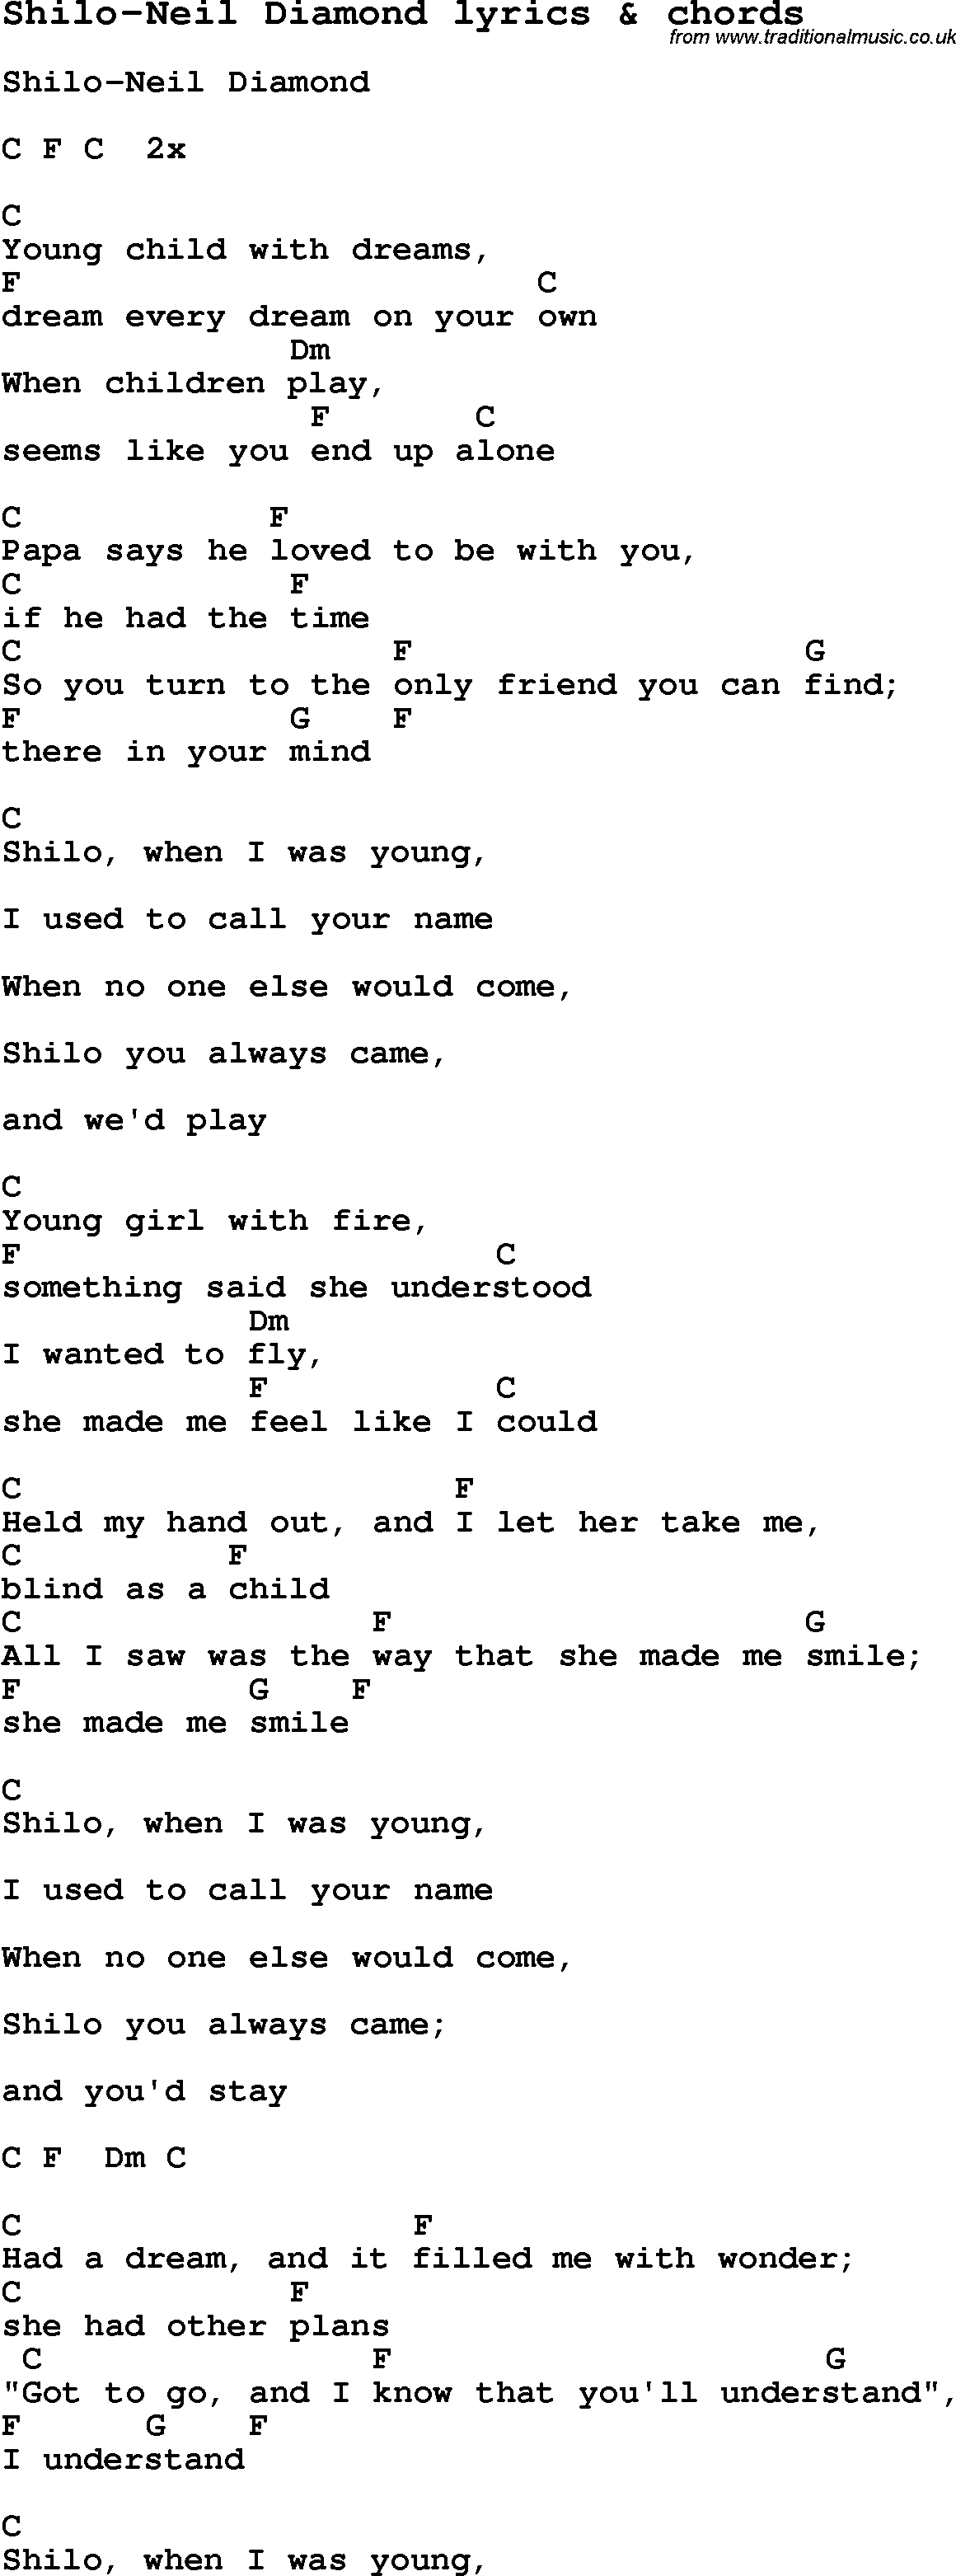 Love Song Lyrics Forshilo Neil Diamond With Chords